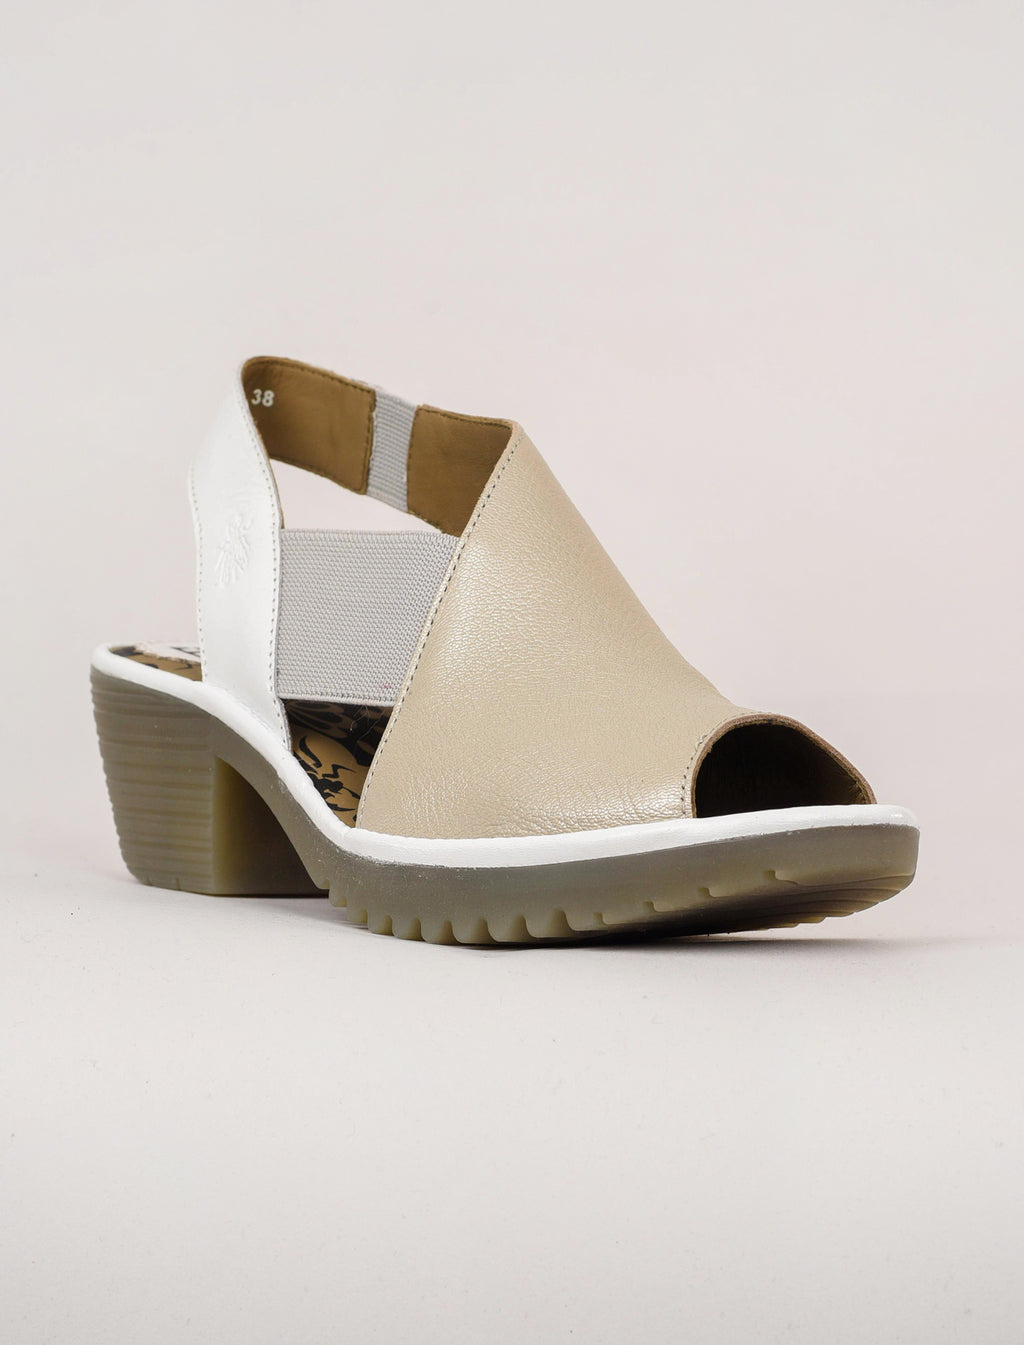 OTBT Shoes Nova Wedges, Copper